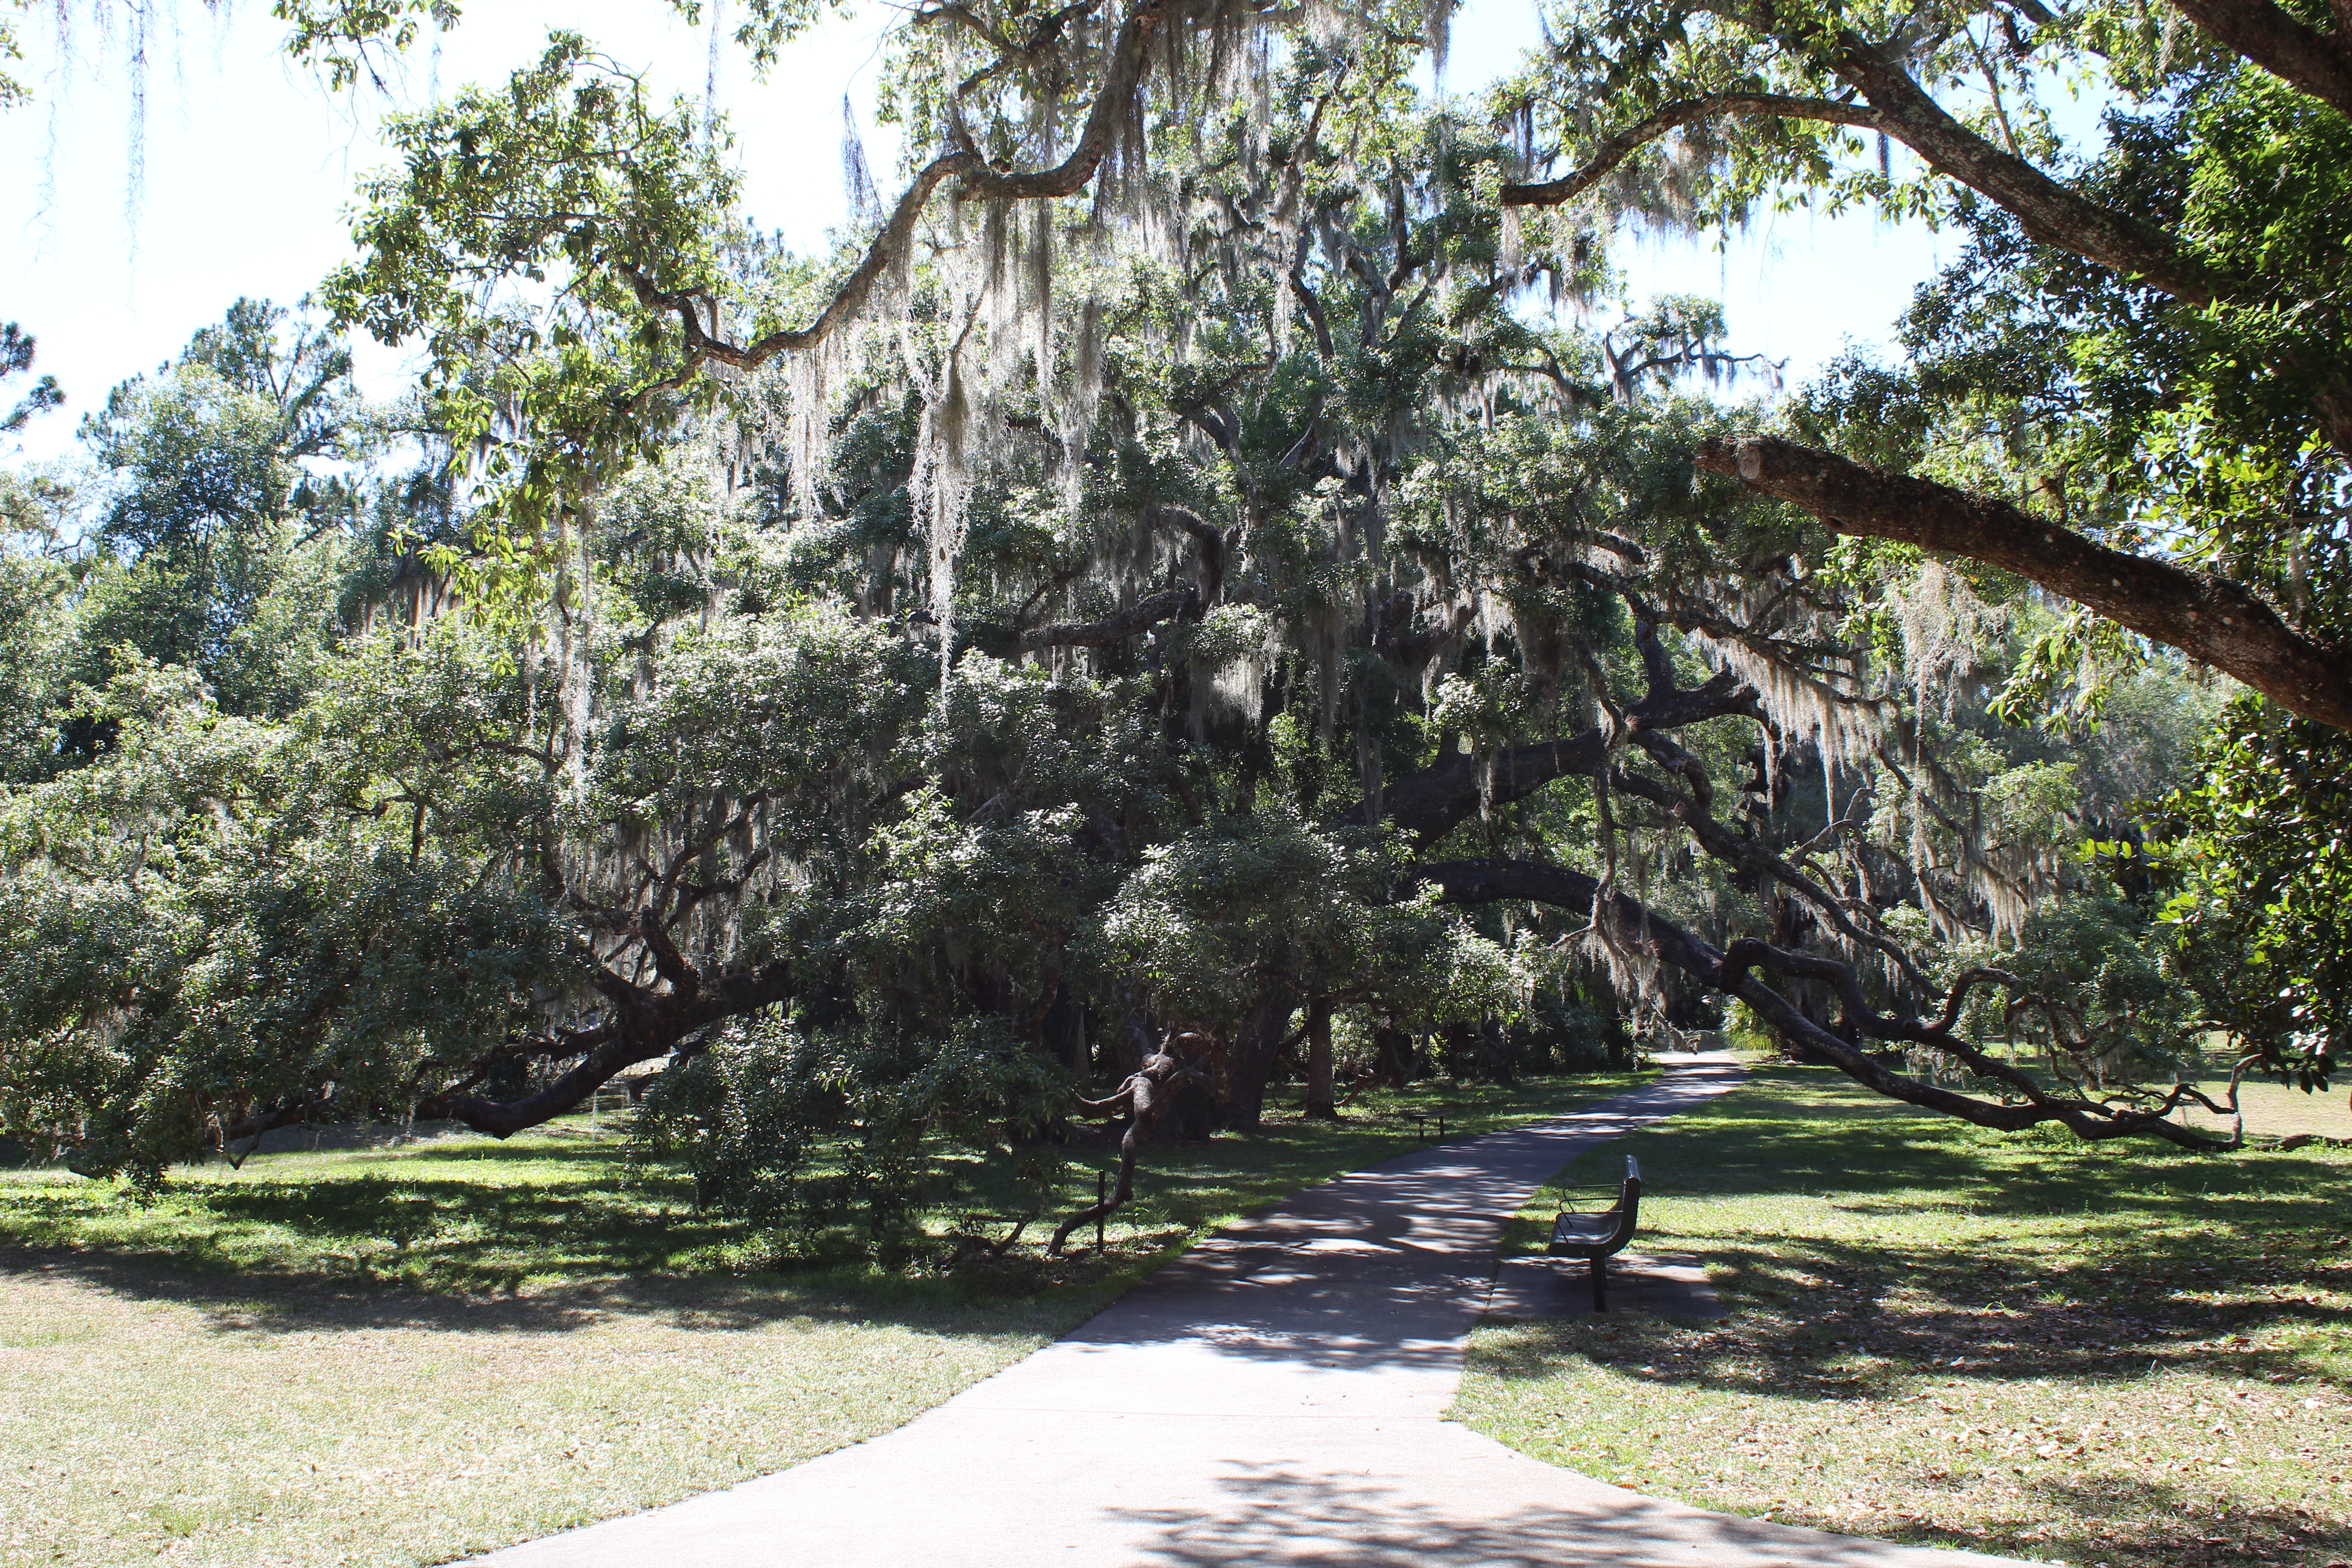 large oak trees with branches coming over walkway